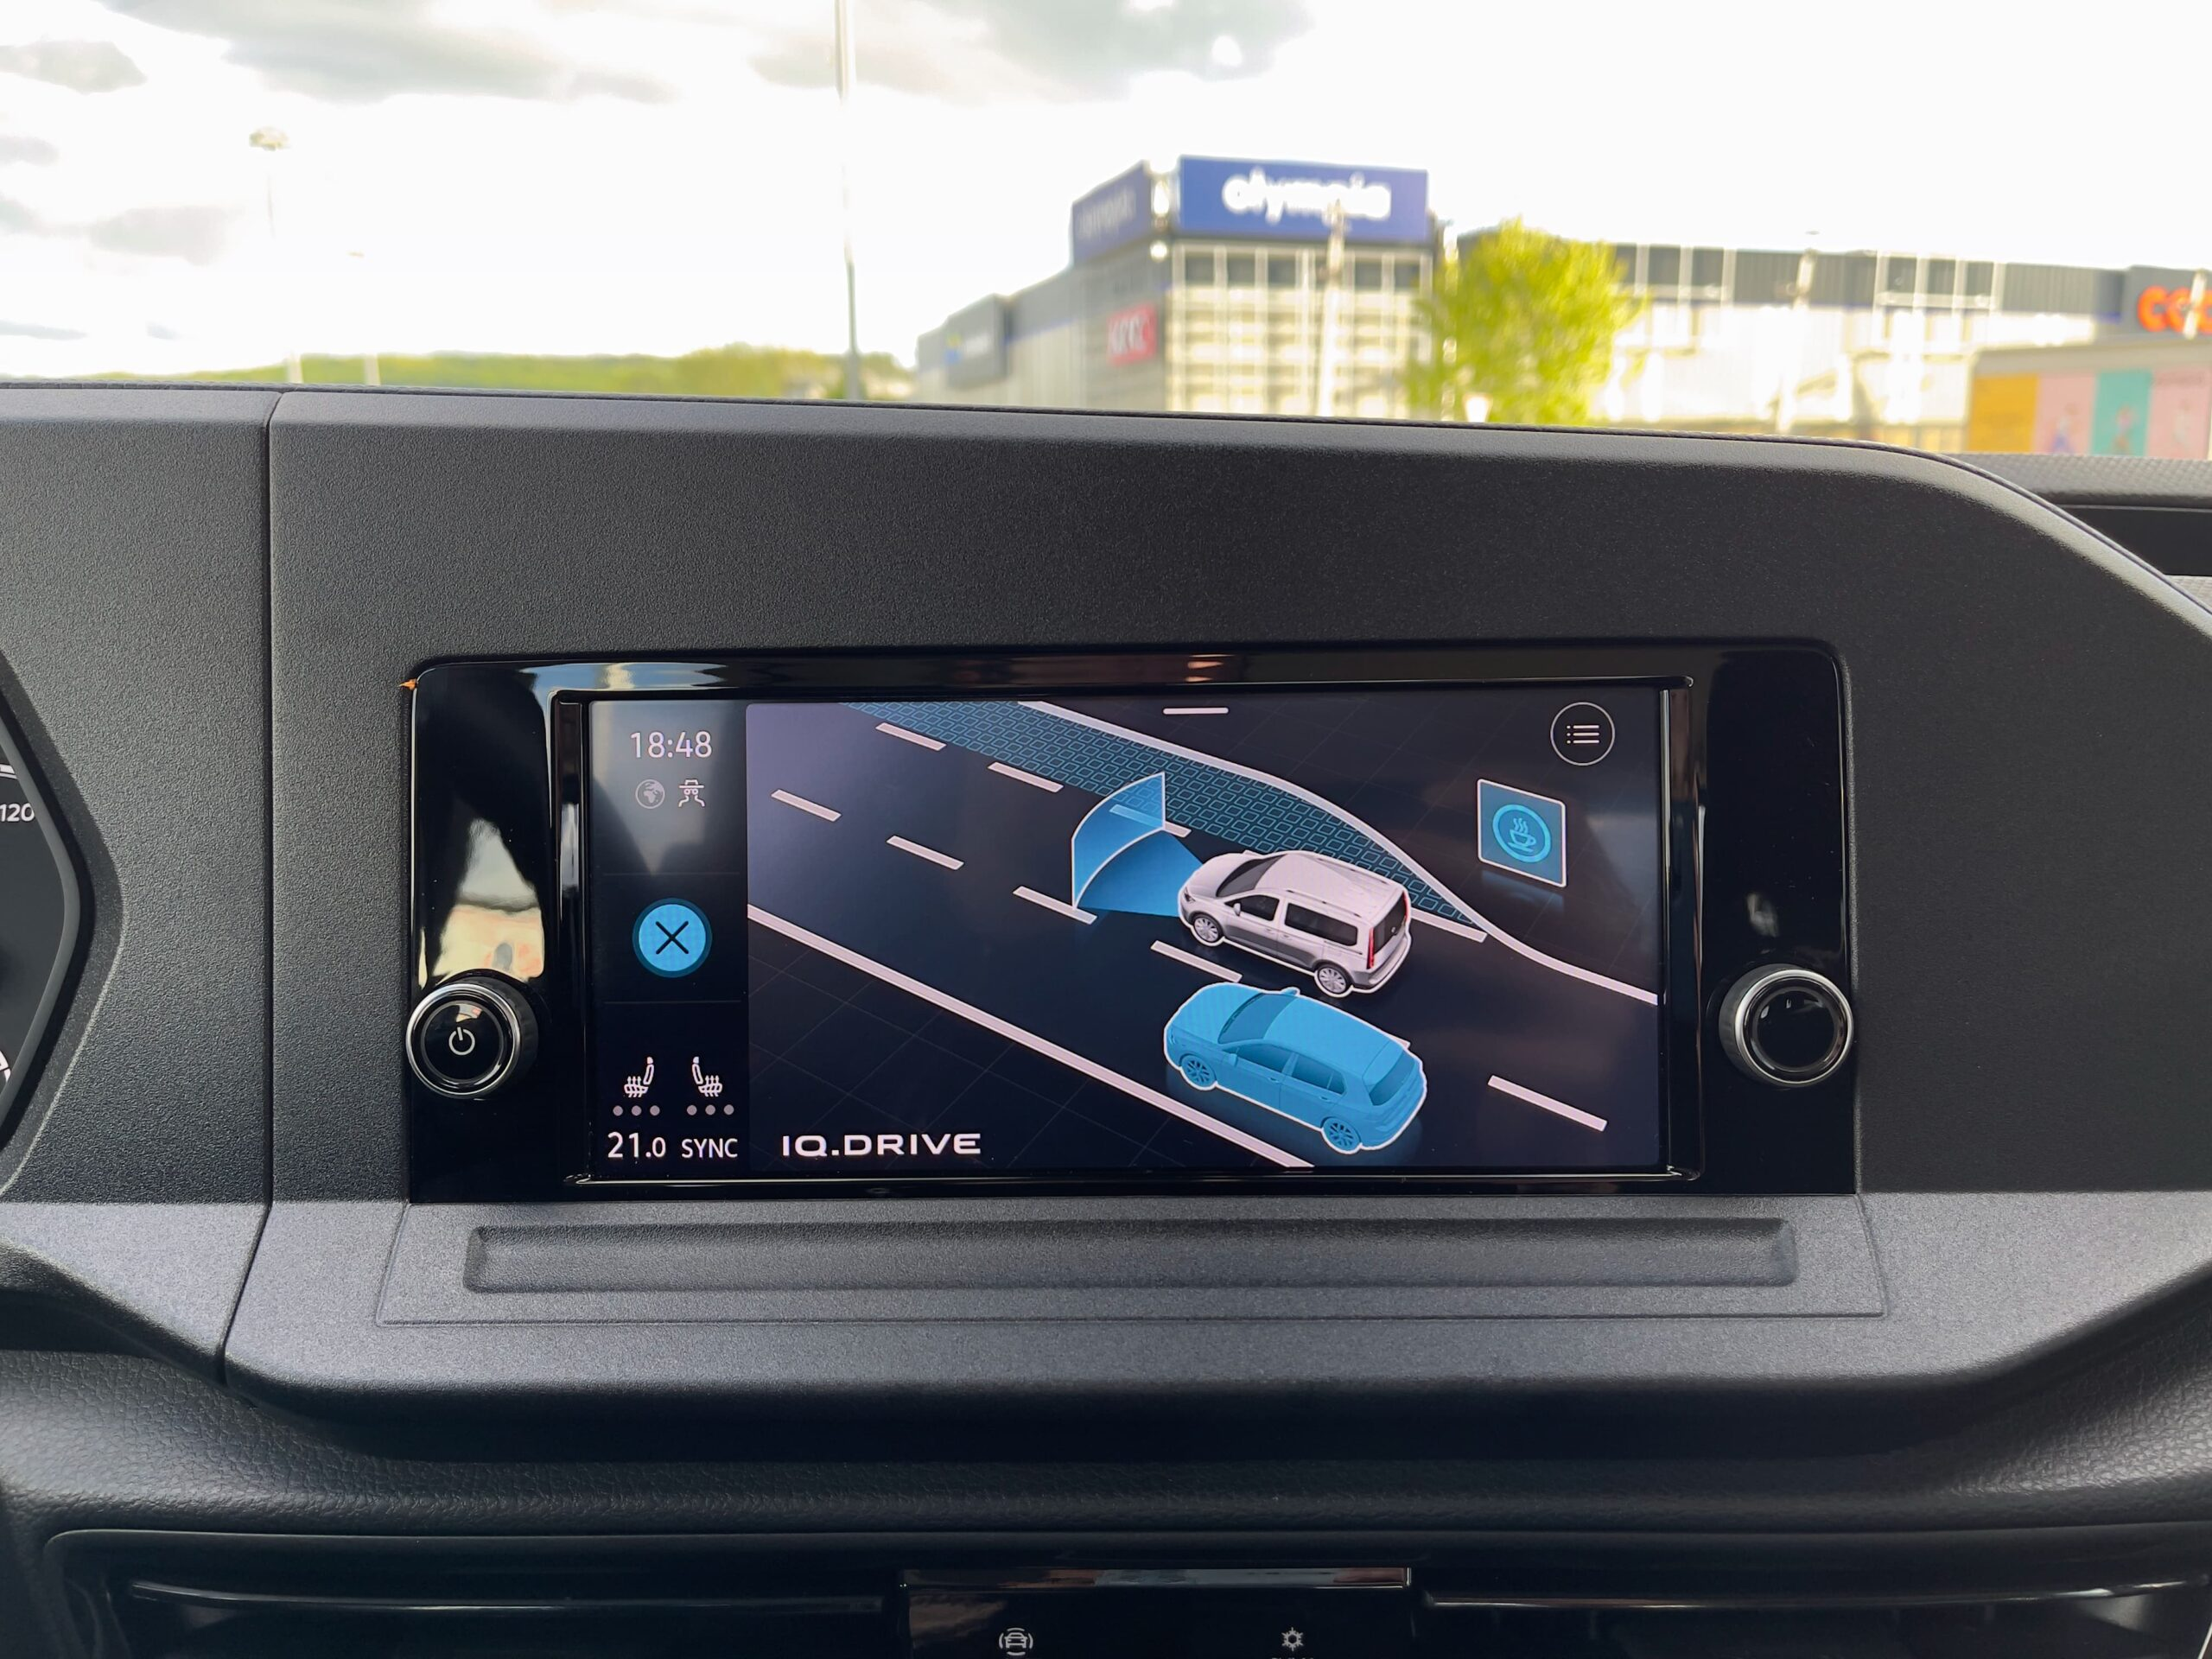 Volkswagen_Caddy_2021_infotainment_asistencni_systemy_1